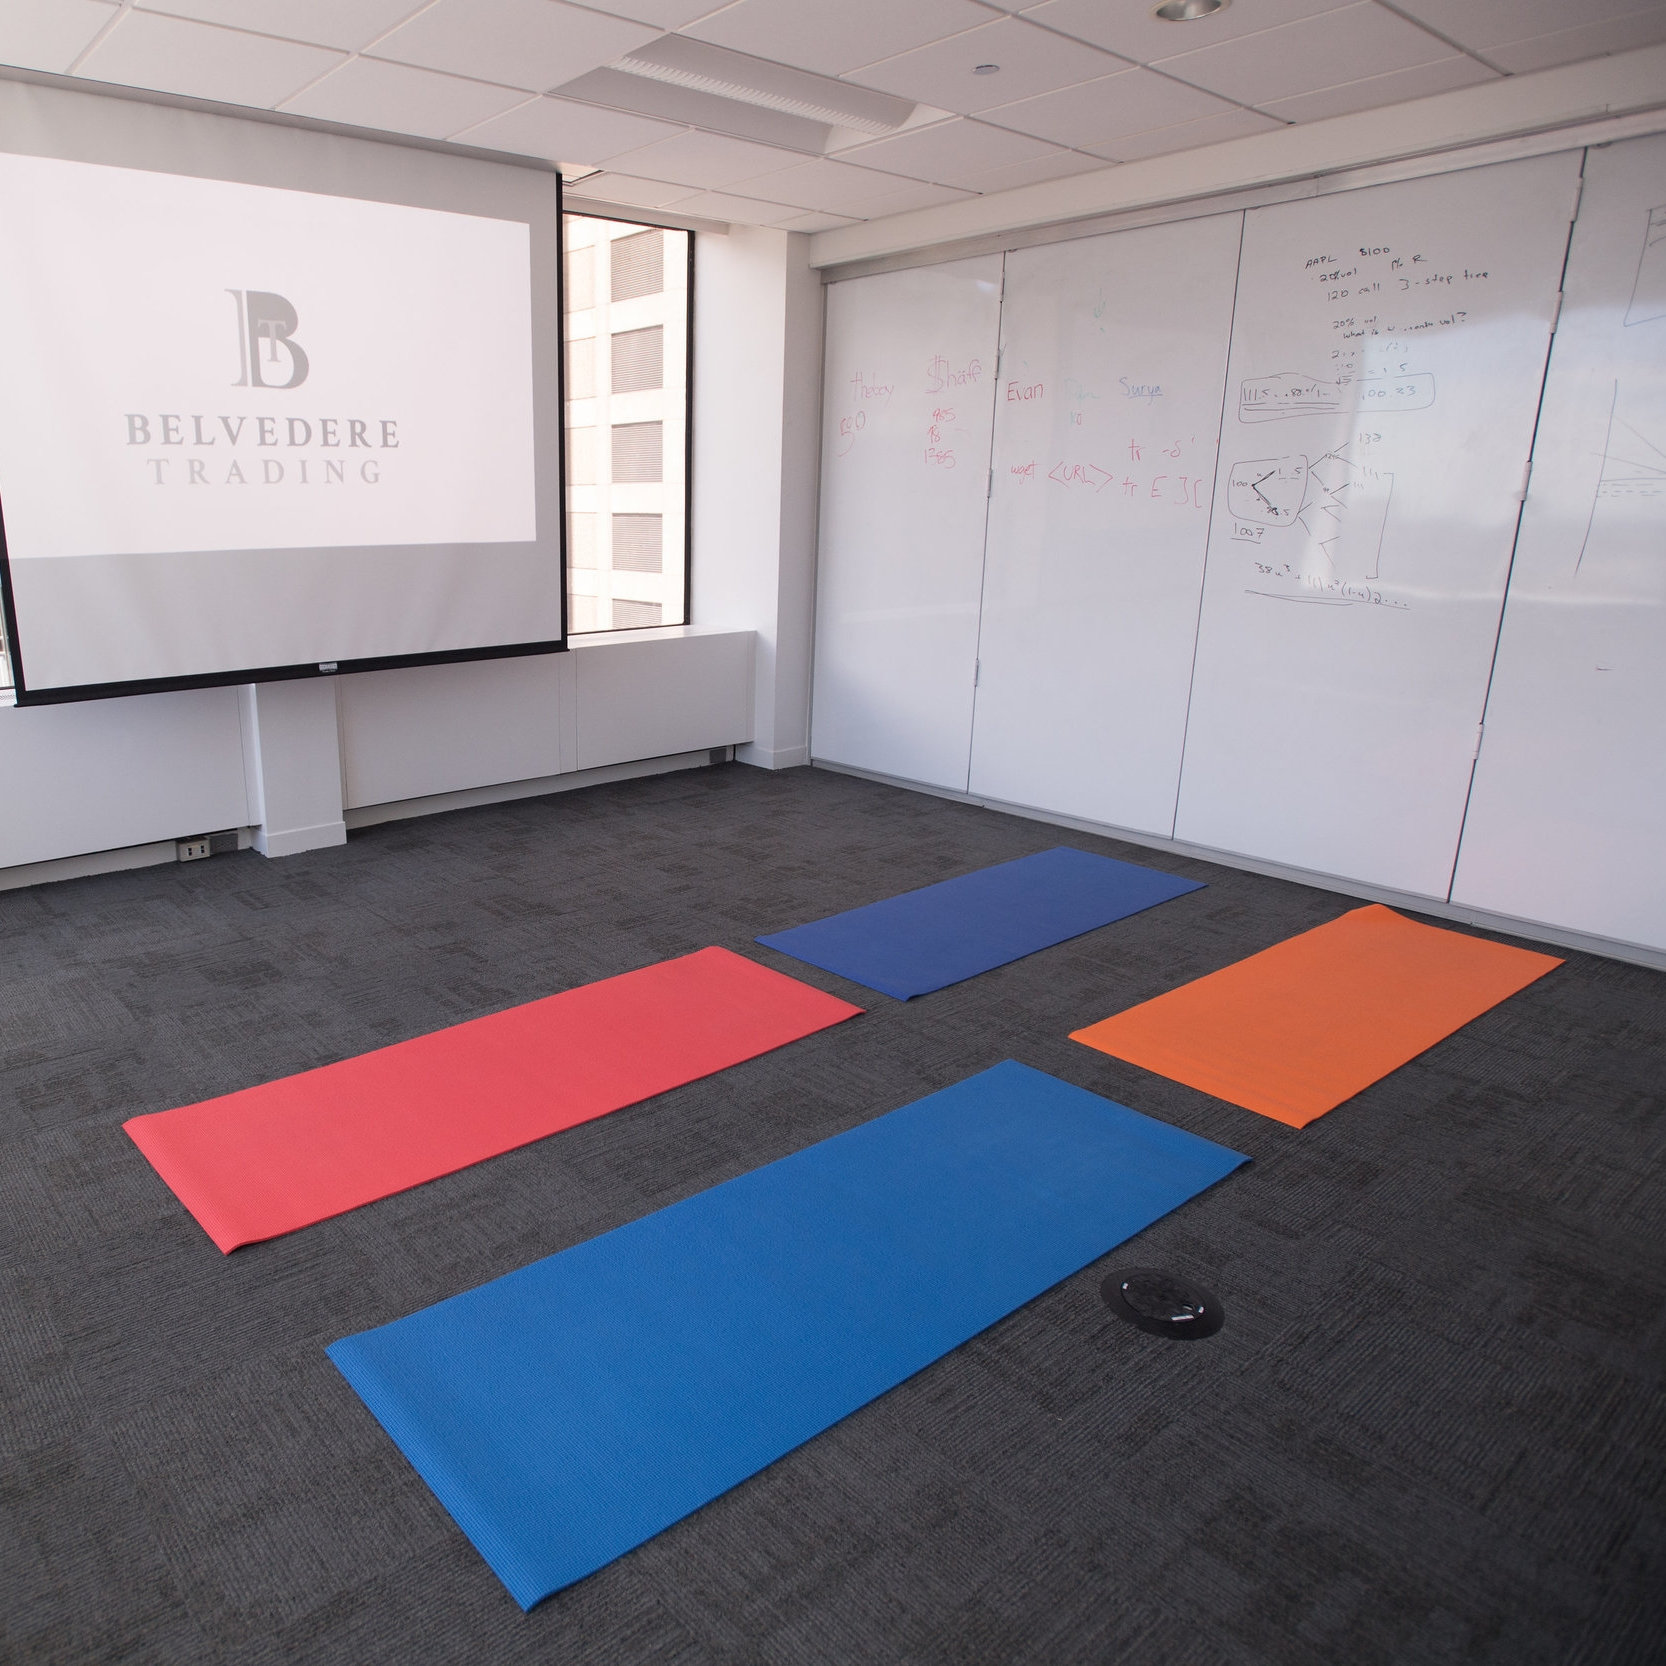 Yoga mats in a conference room.